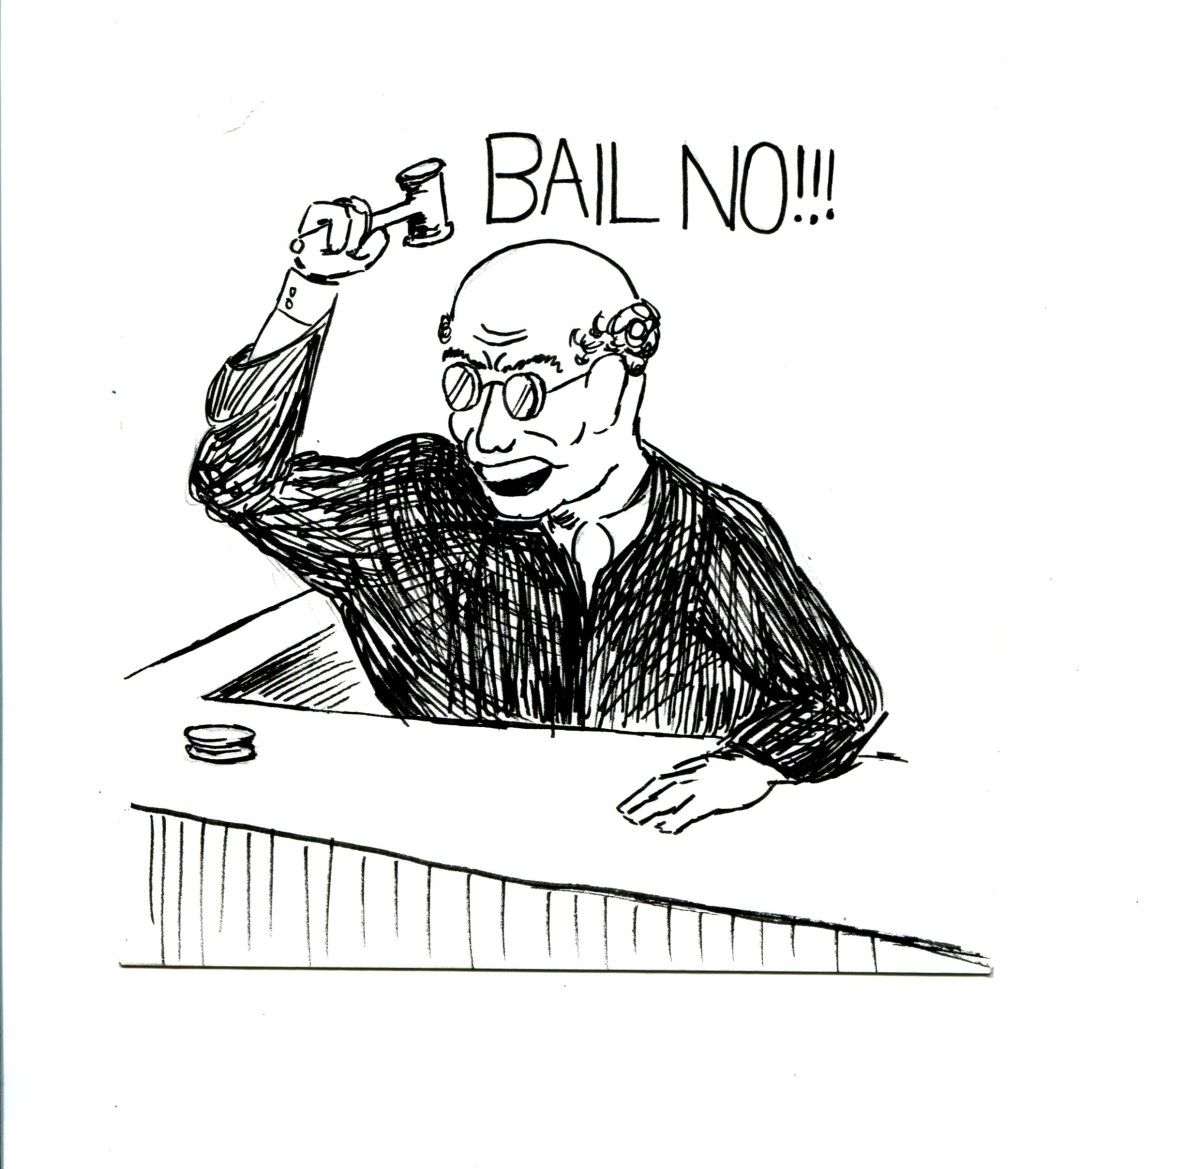 California bail reform bill